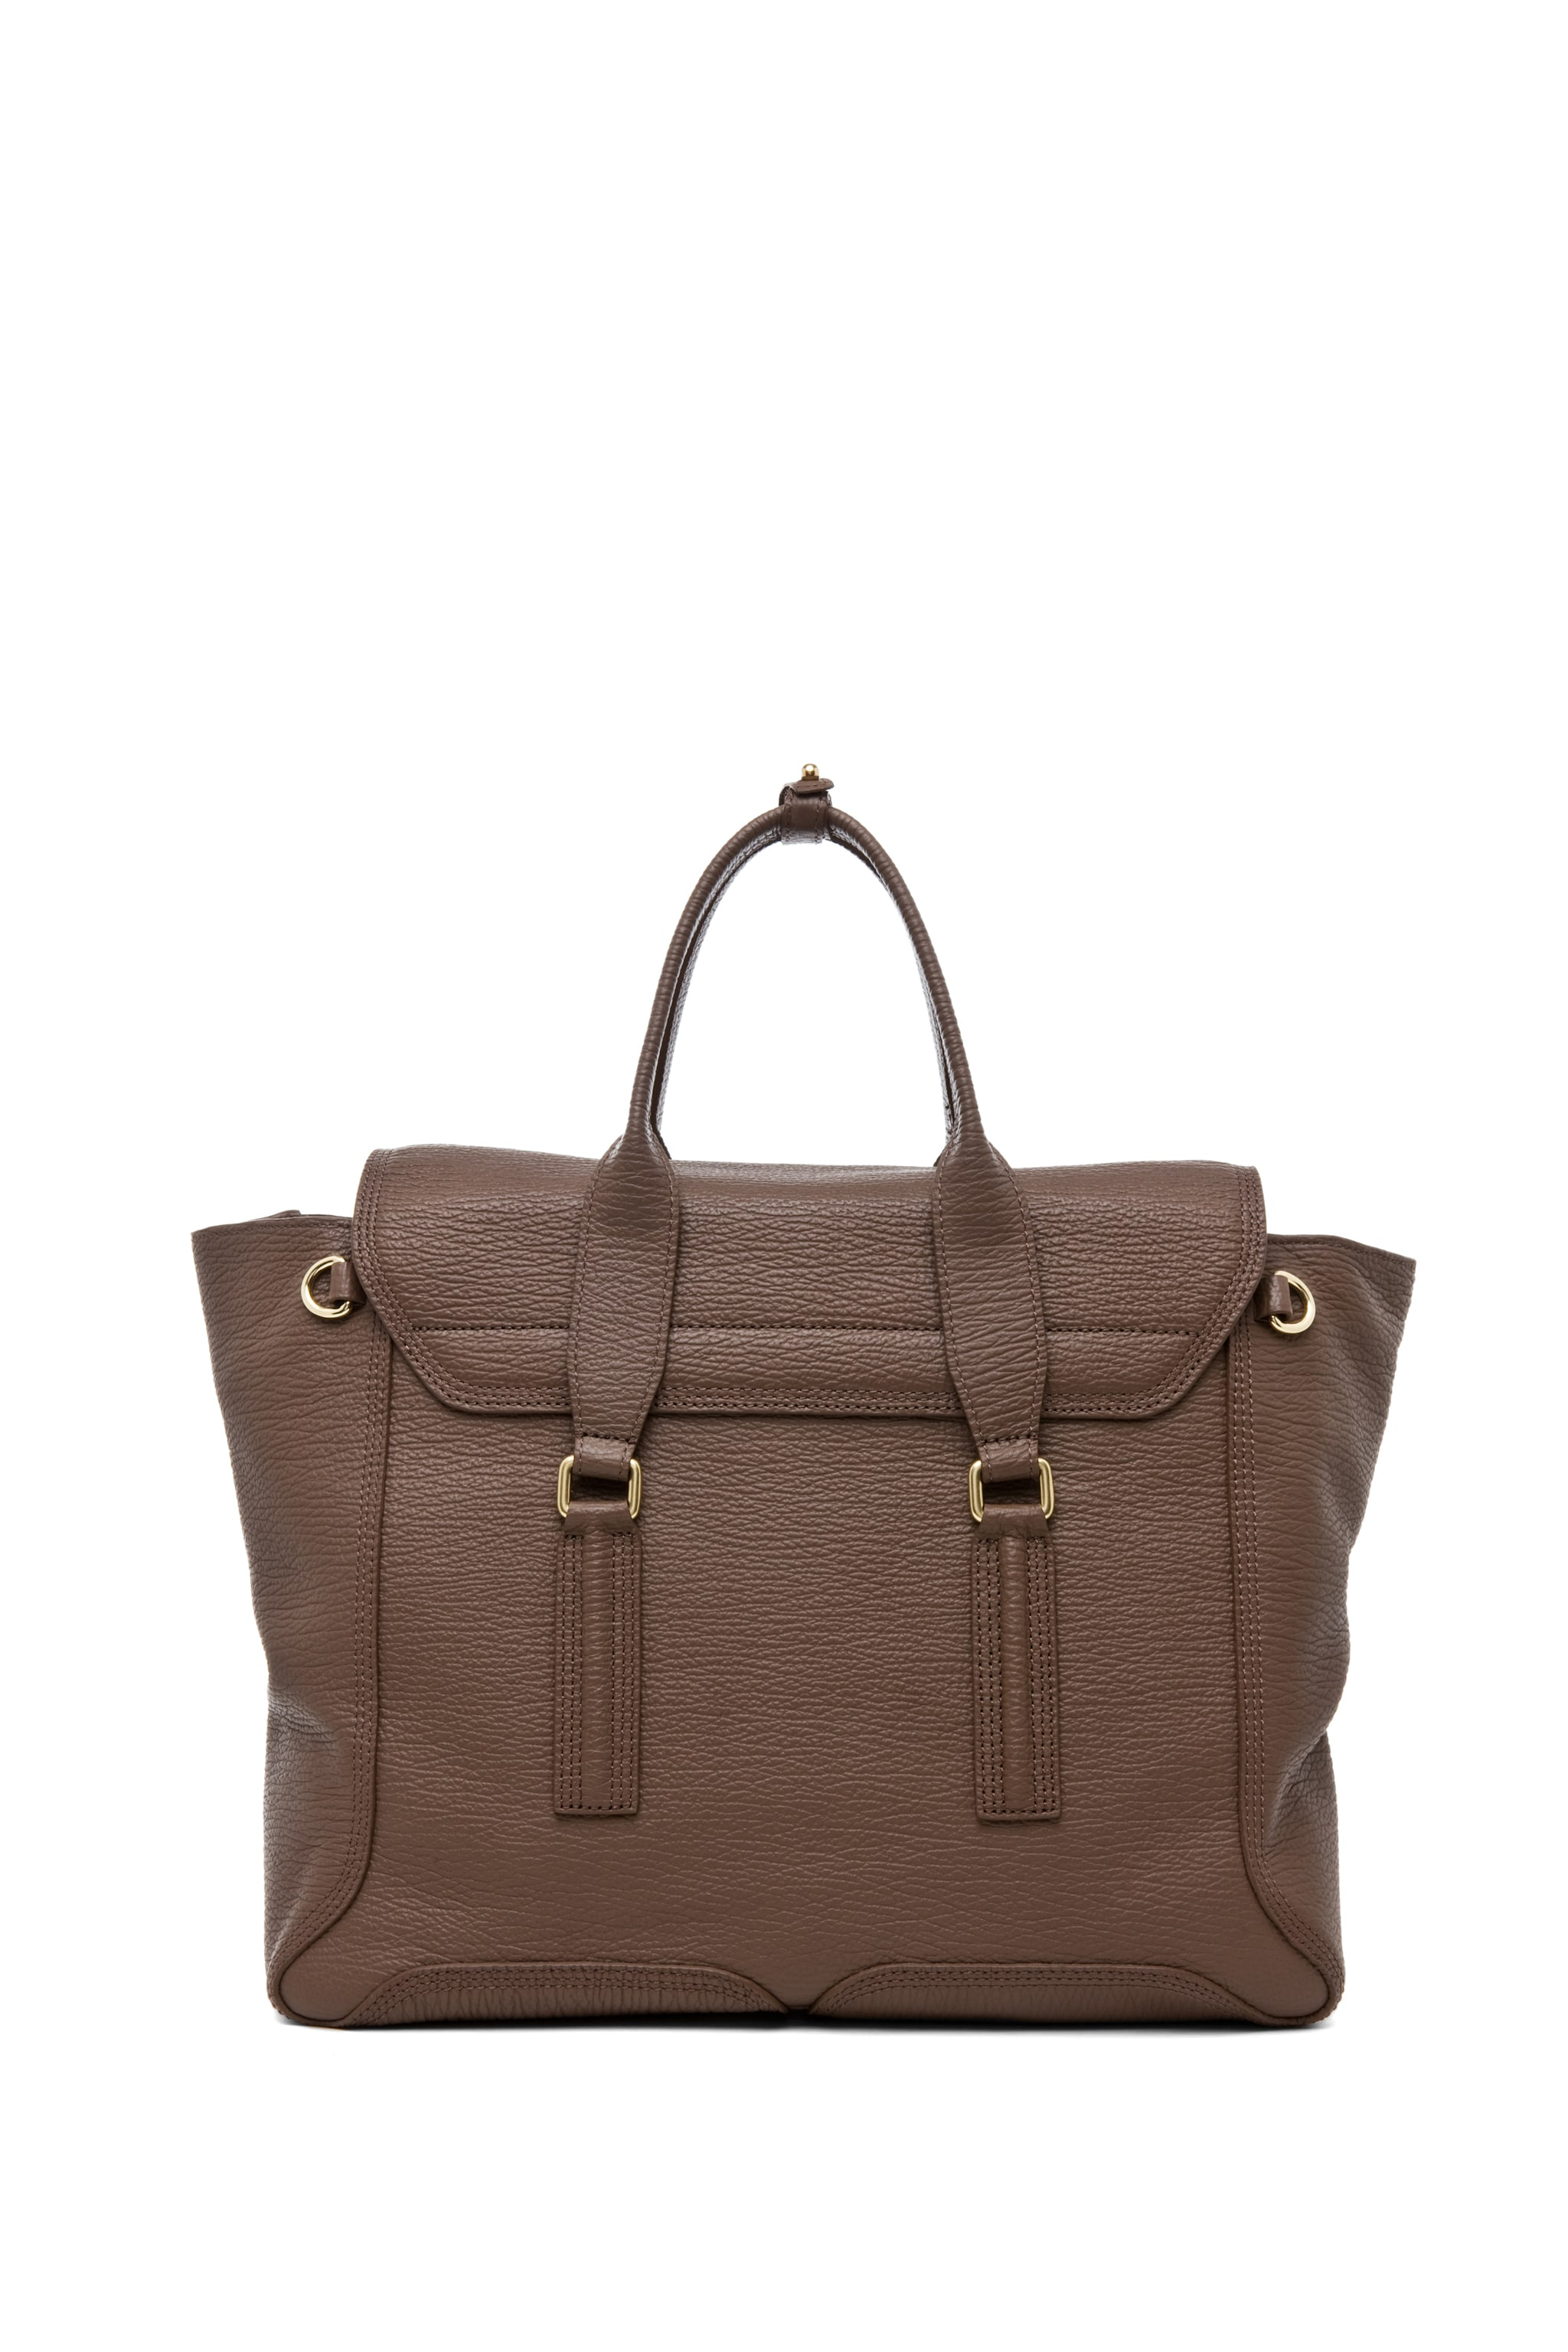 Image 2 of 3.1 phillip lim Pashli Satchel in Taupe